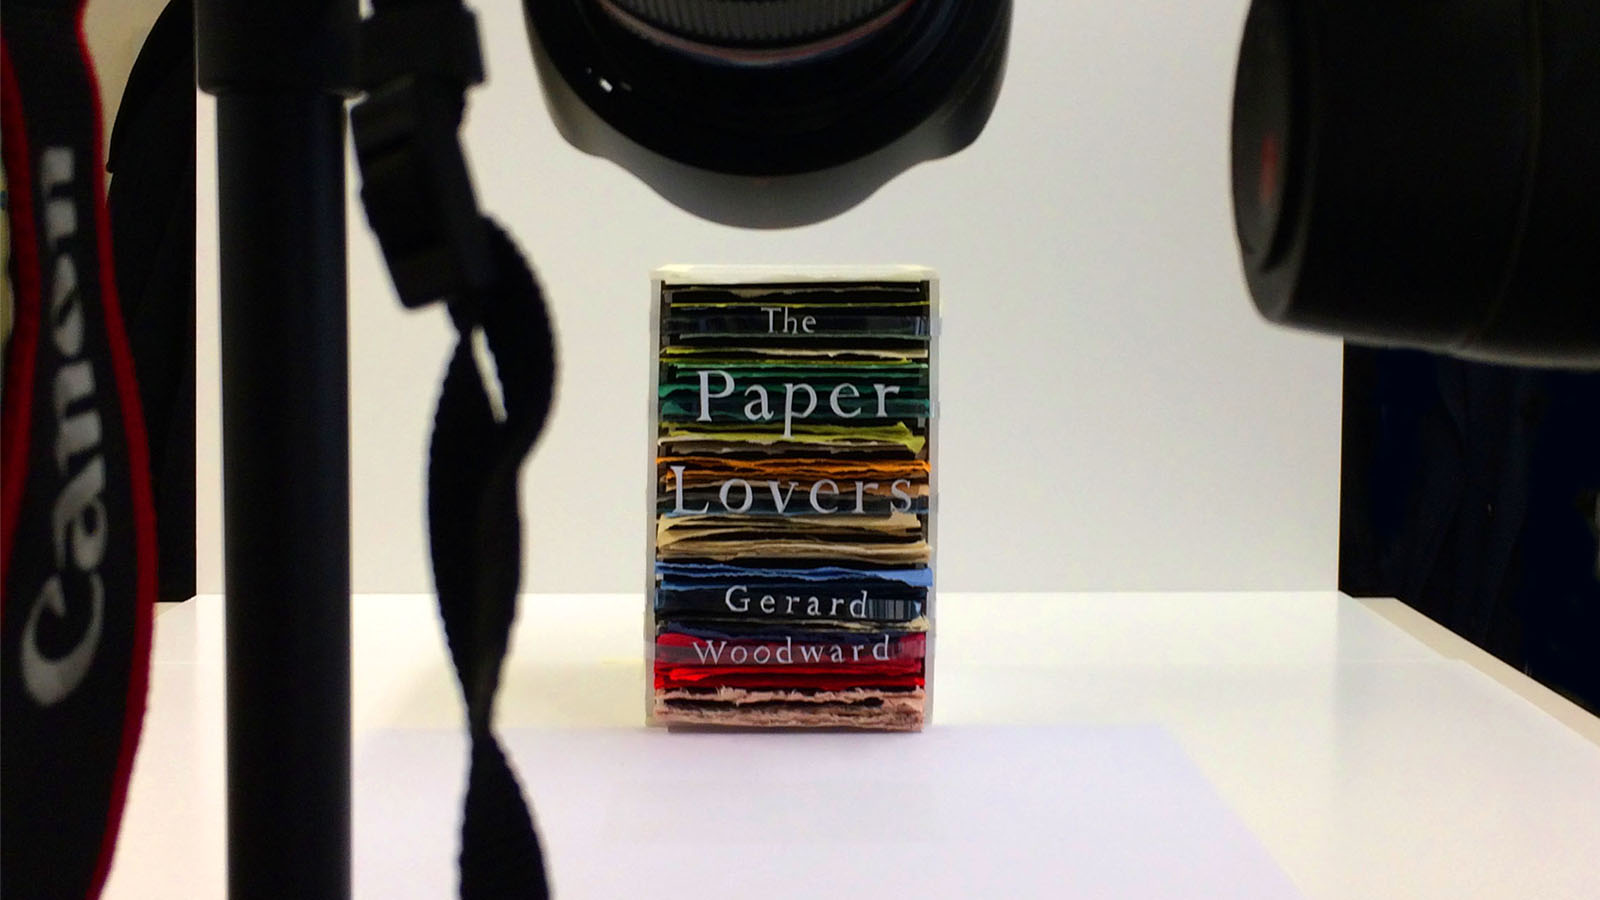 Gerard Woodward The Paper Lovers cover design 2